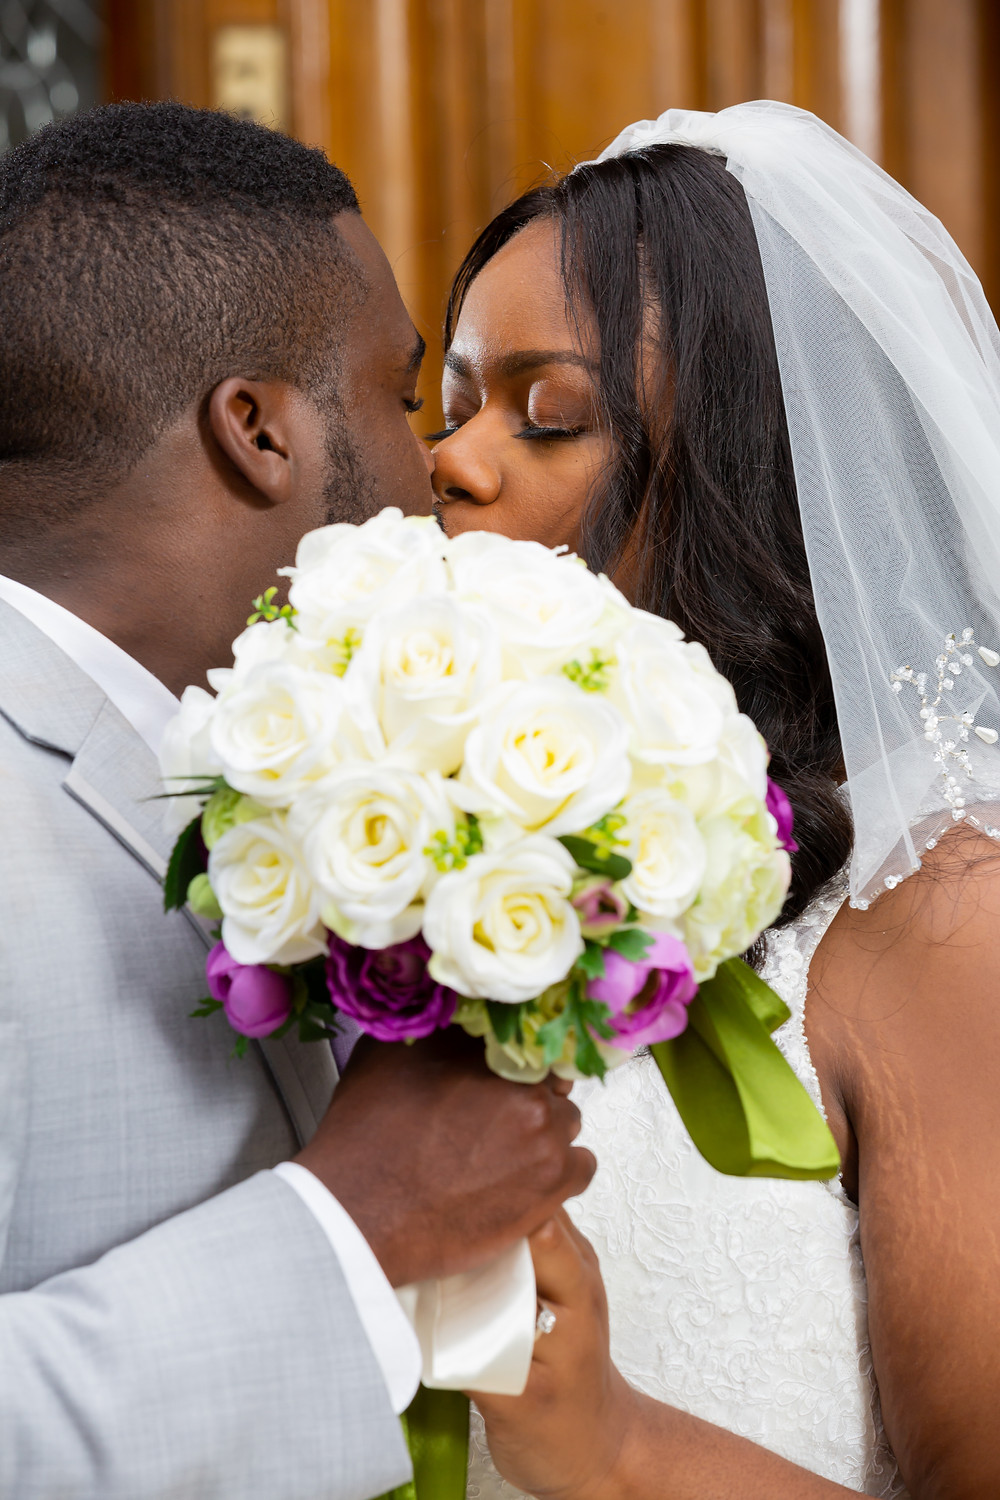 John and Jordyn sharing a kiss behind the bride's bouquet after the wedding in Fairfax, Virginia.